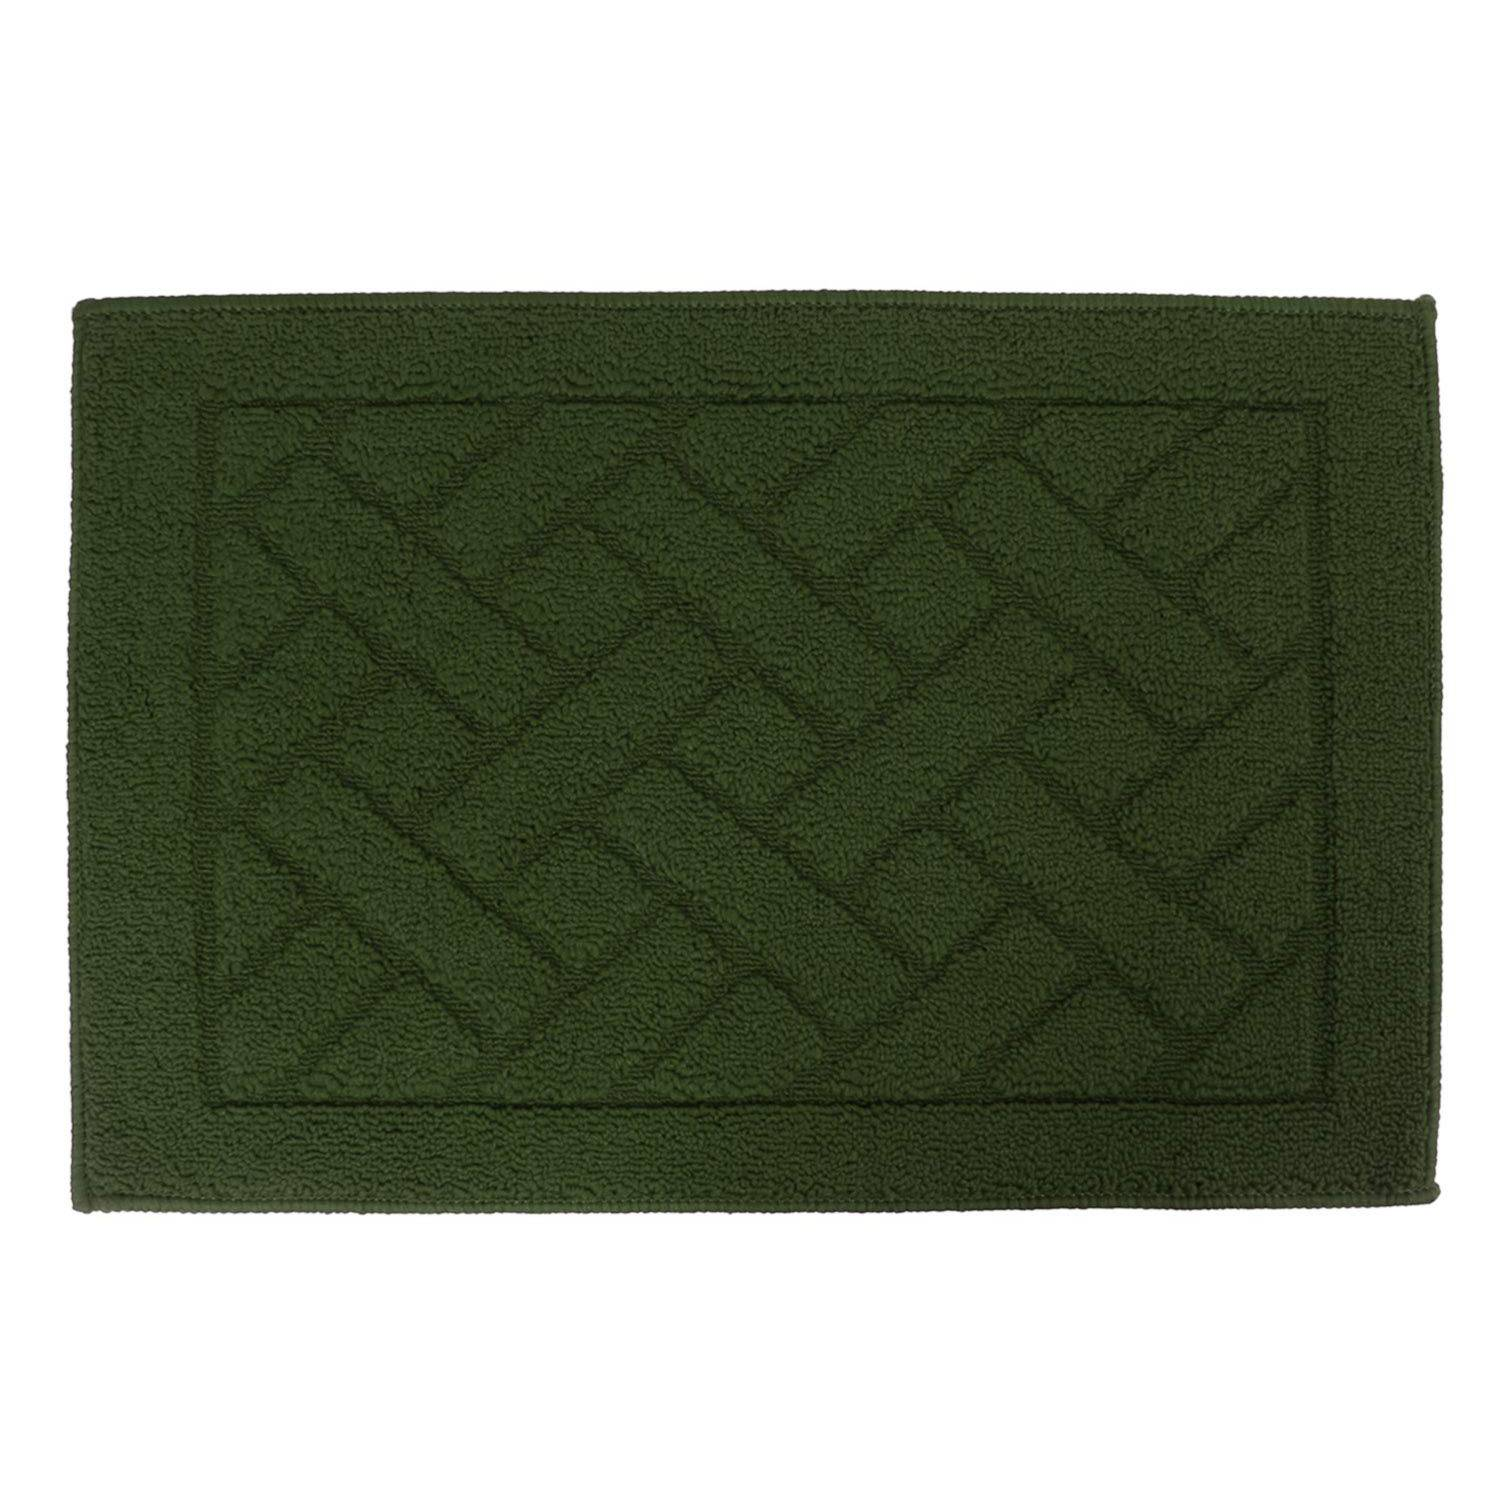 Green. AND007781. Size- 70x45 cm.